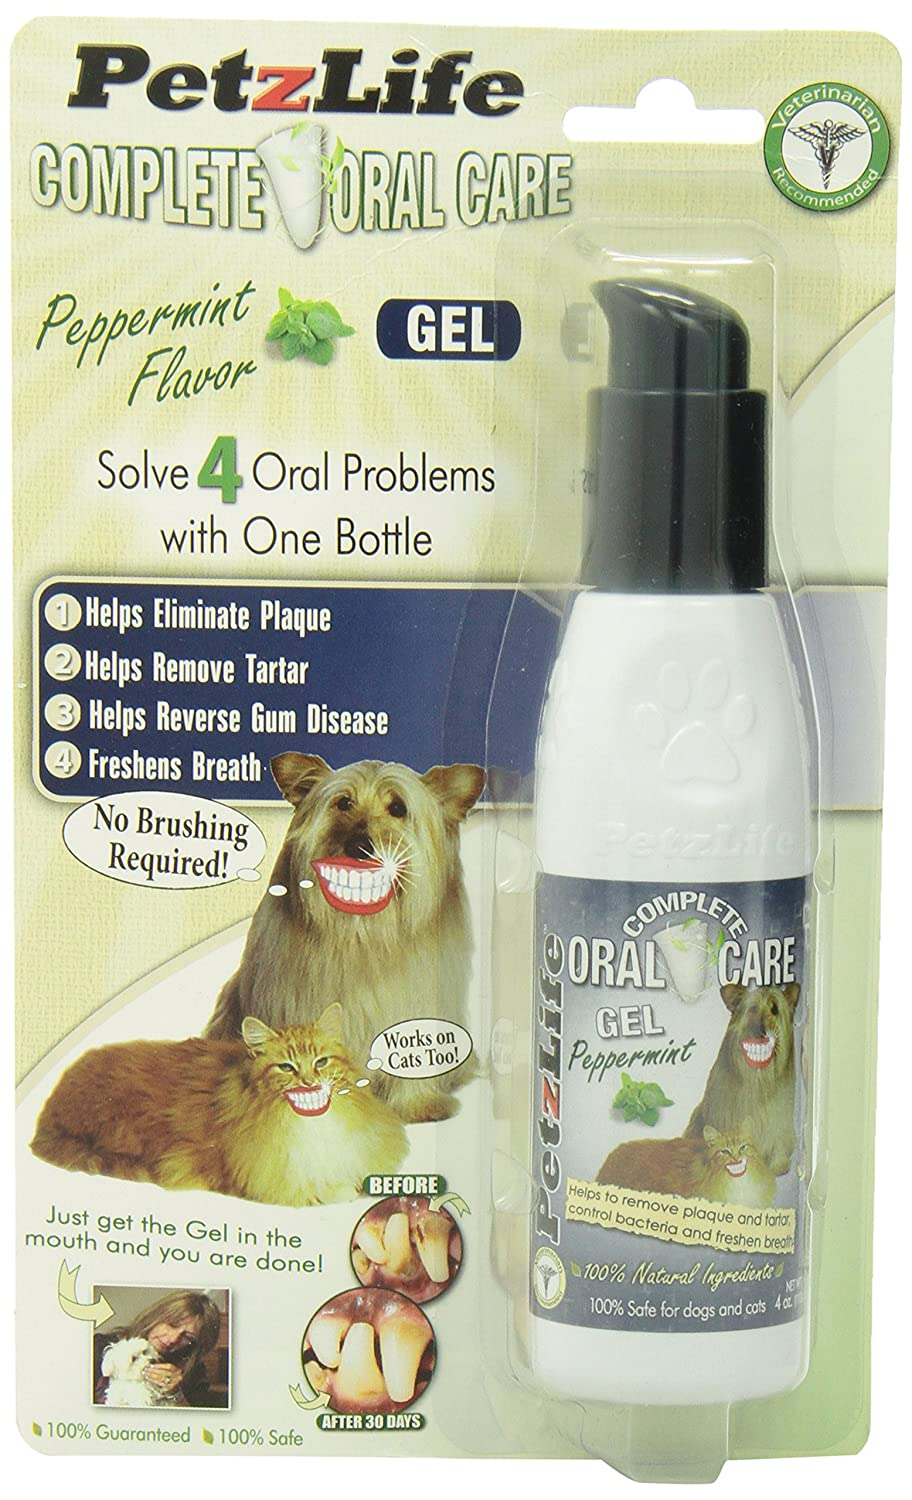 PetzLife 891012 Complete Oral Care Gel Peppermint Blister-Package for Pets, 4-Ounce